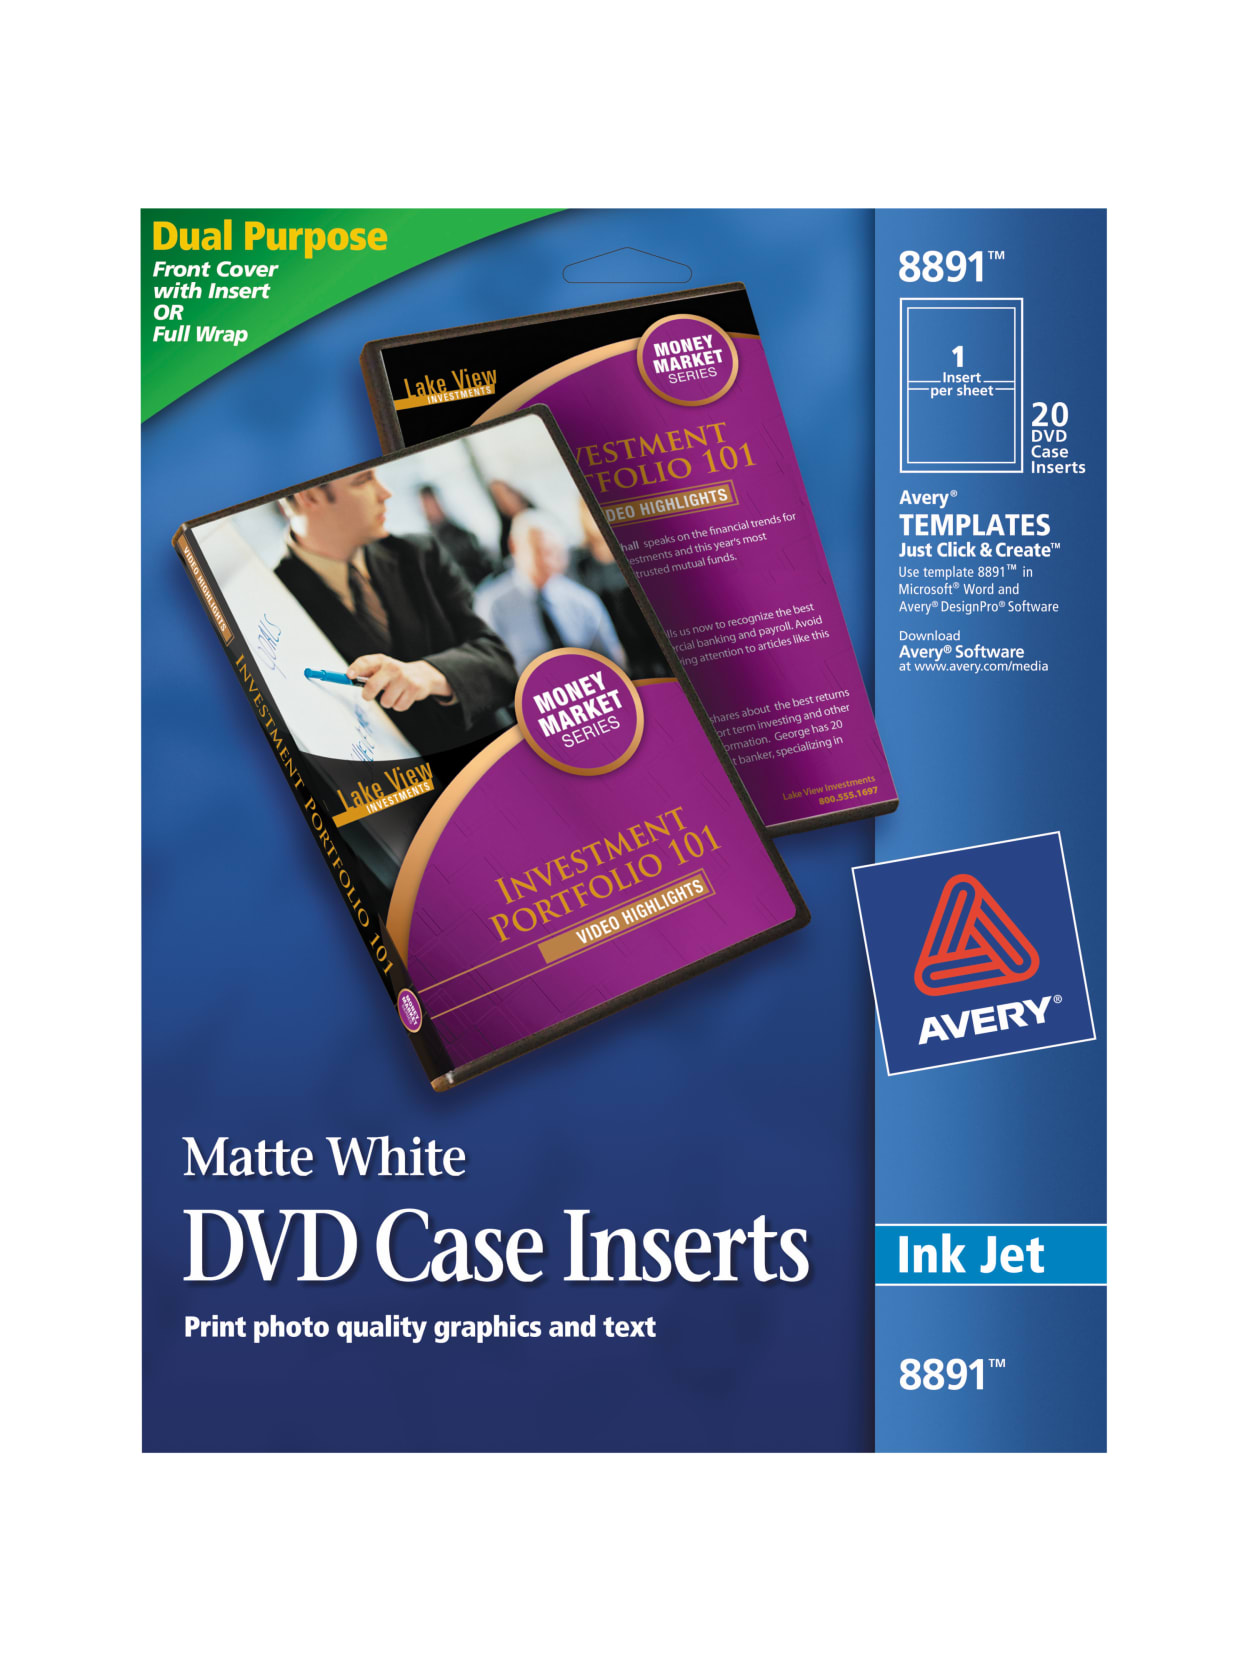 Avery Print To The Edge Inkjet Dvd Case Inserts 8891 4 12 Diameter White Pack Of 20 Office Depot